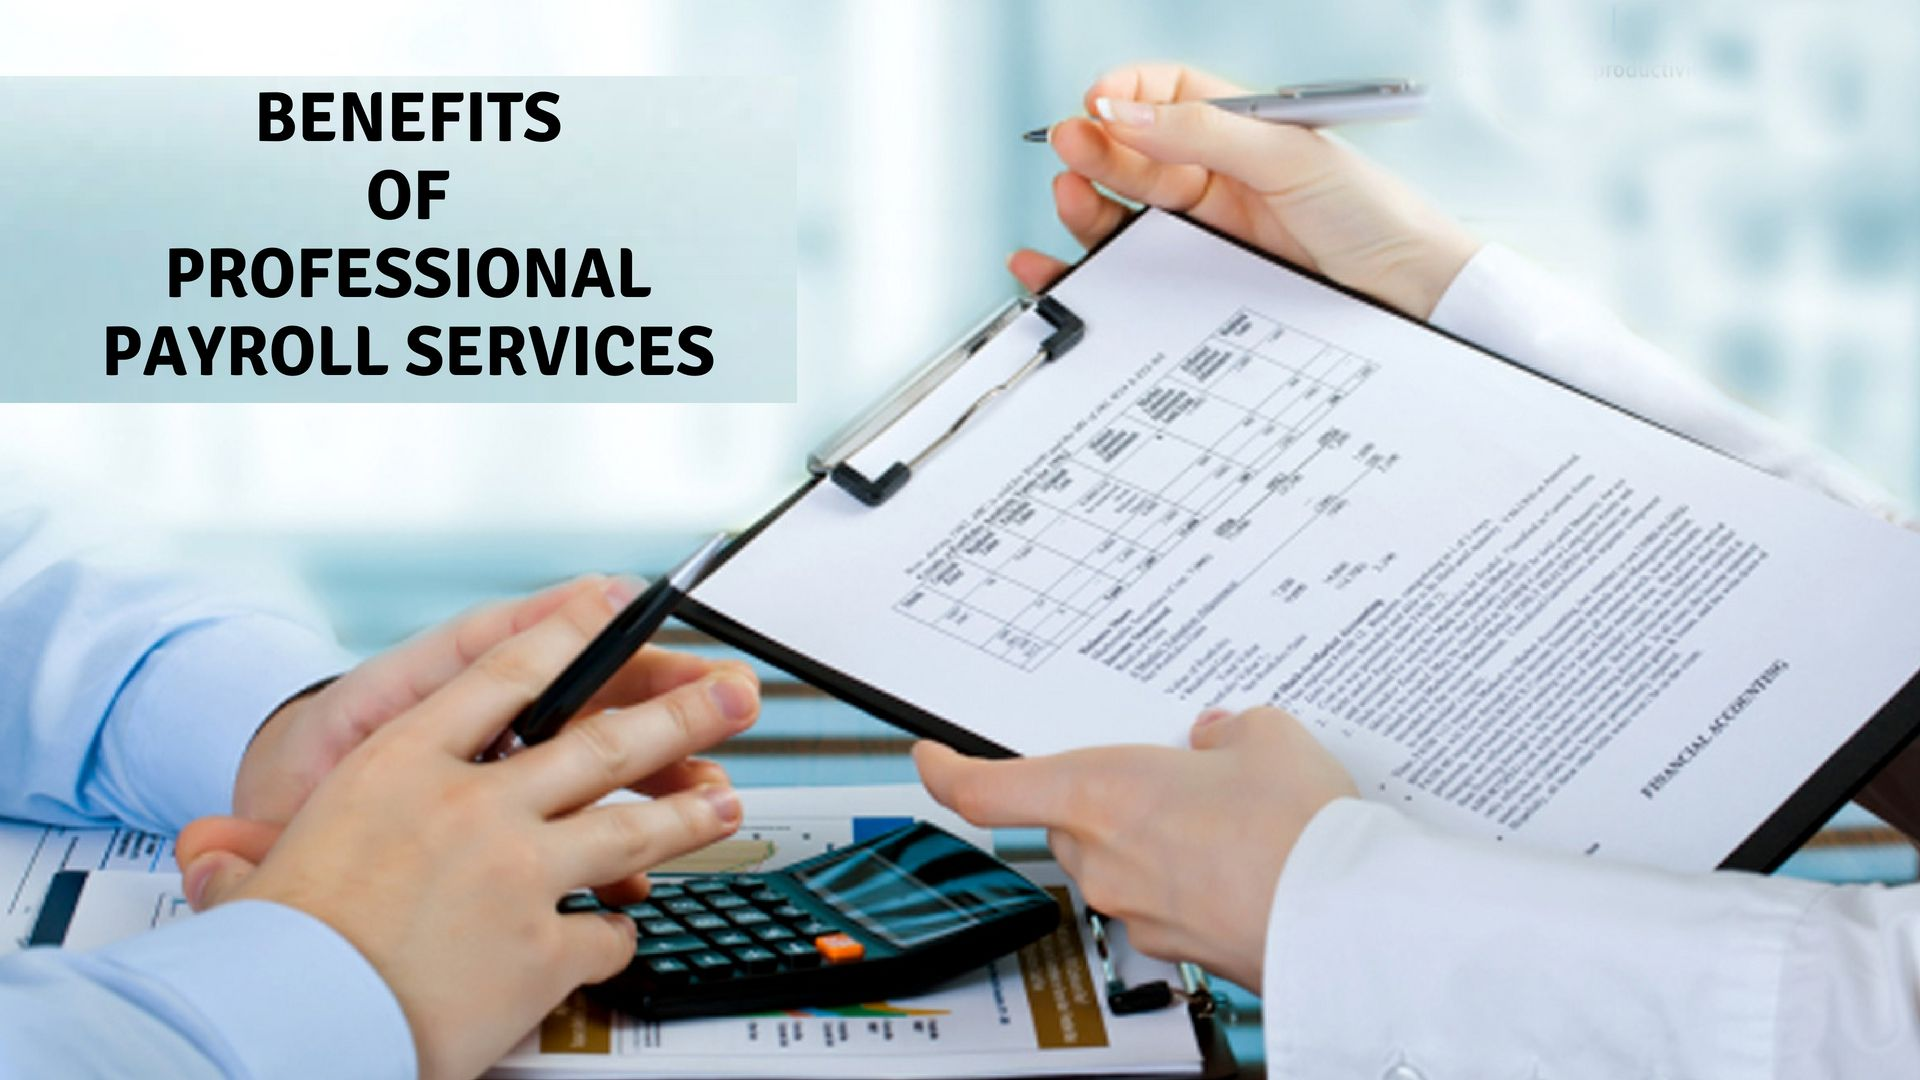 A reputed firm offering professionalpayroll services